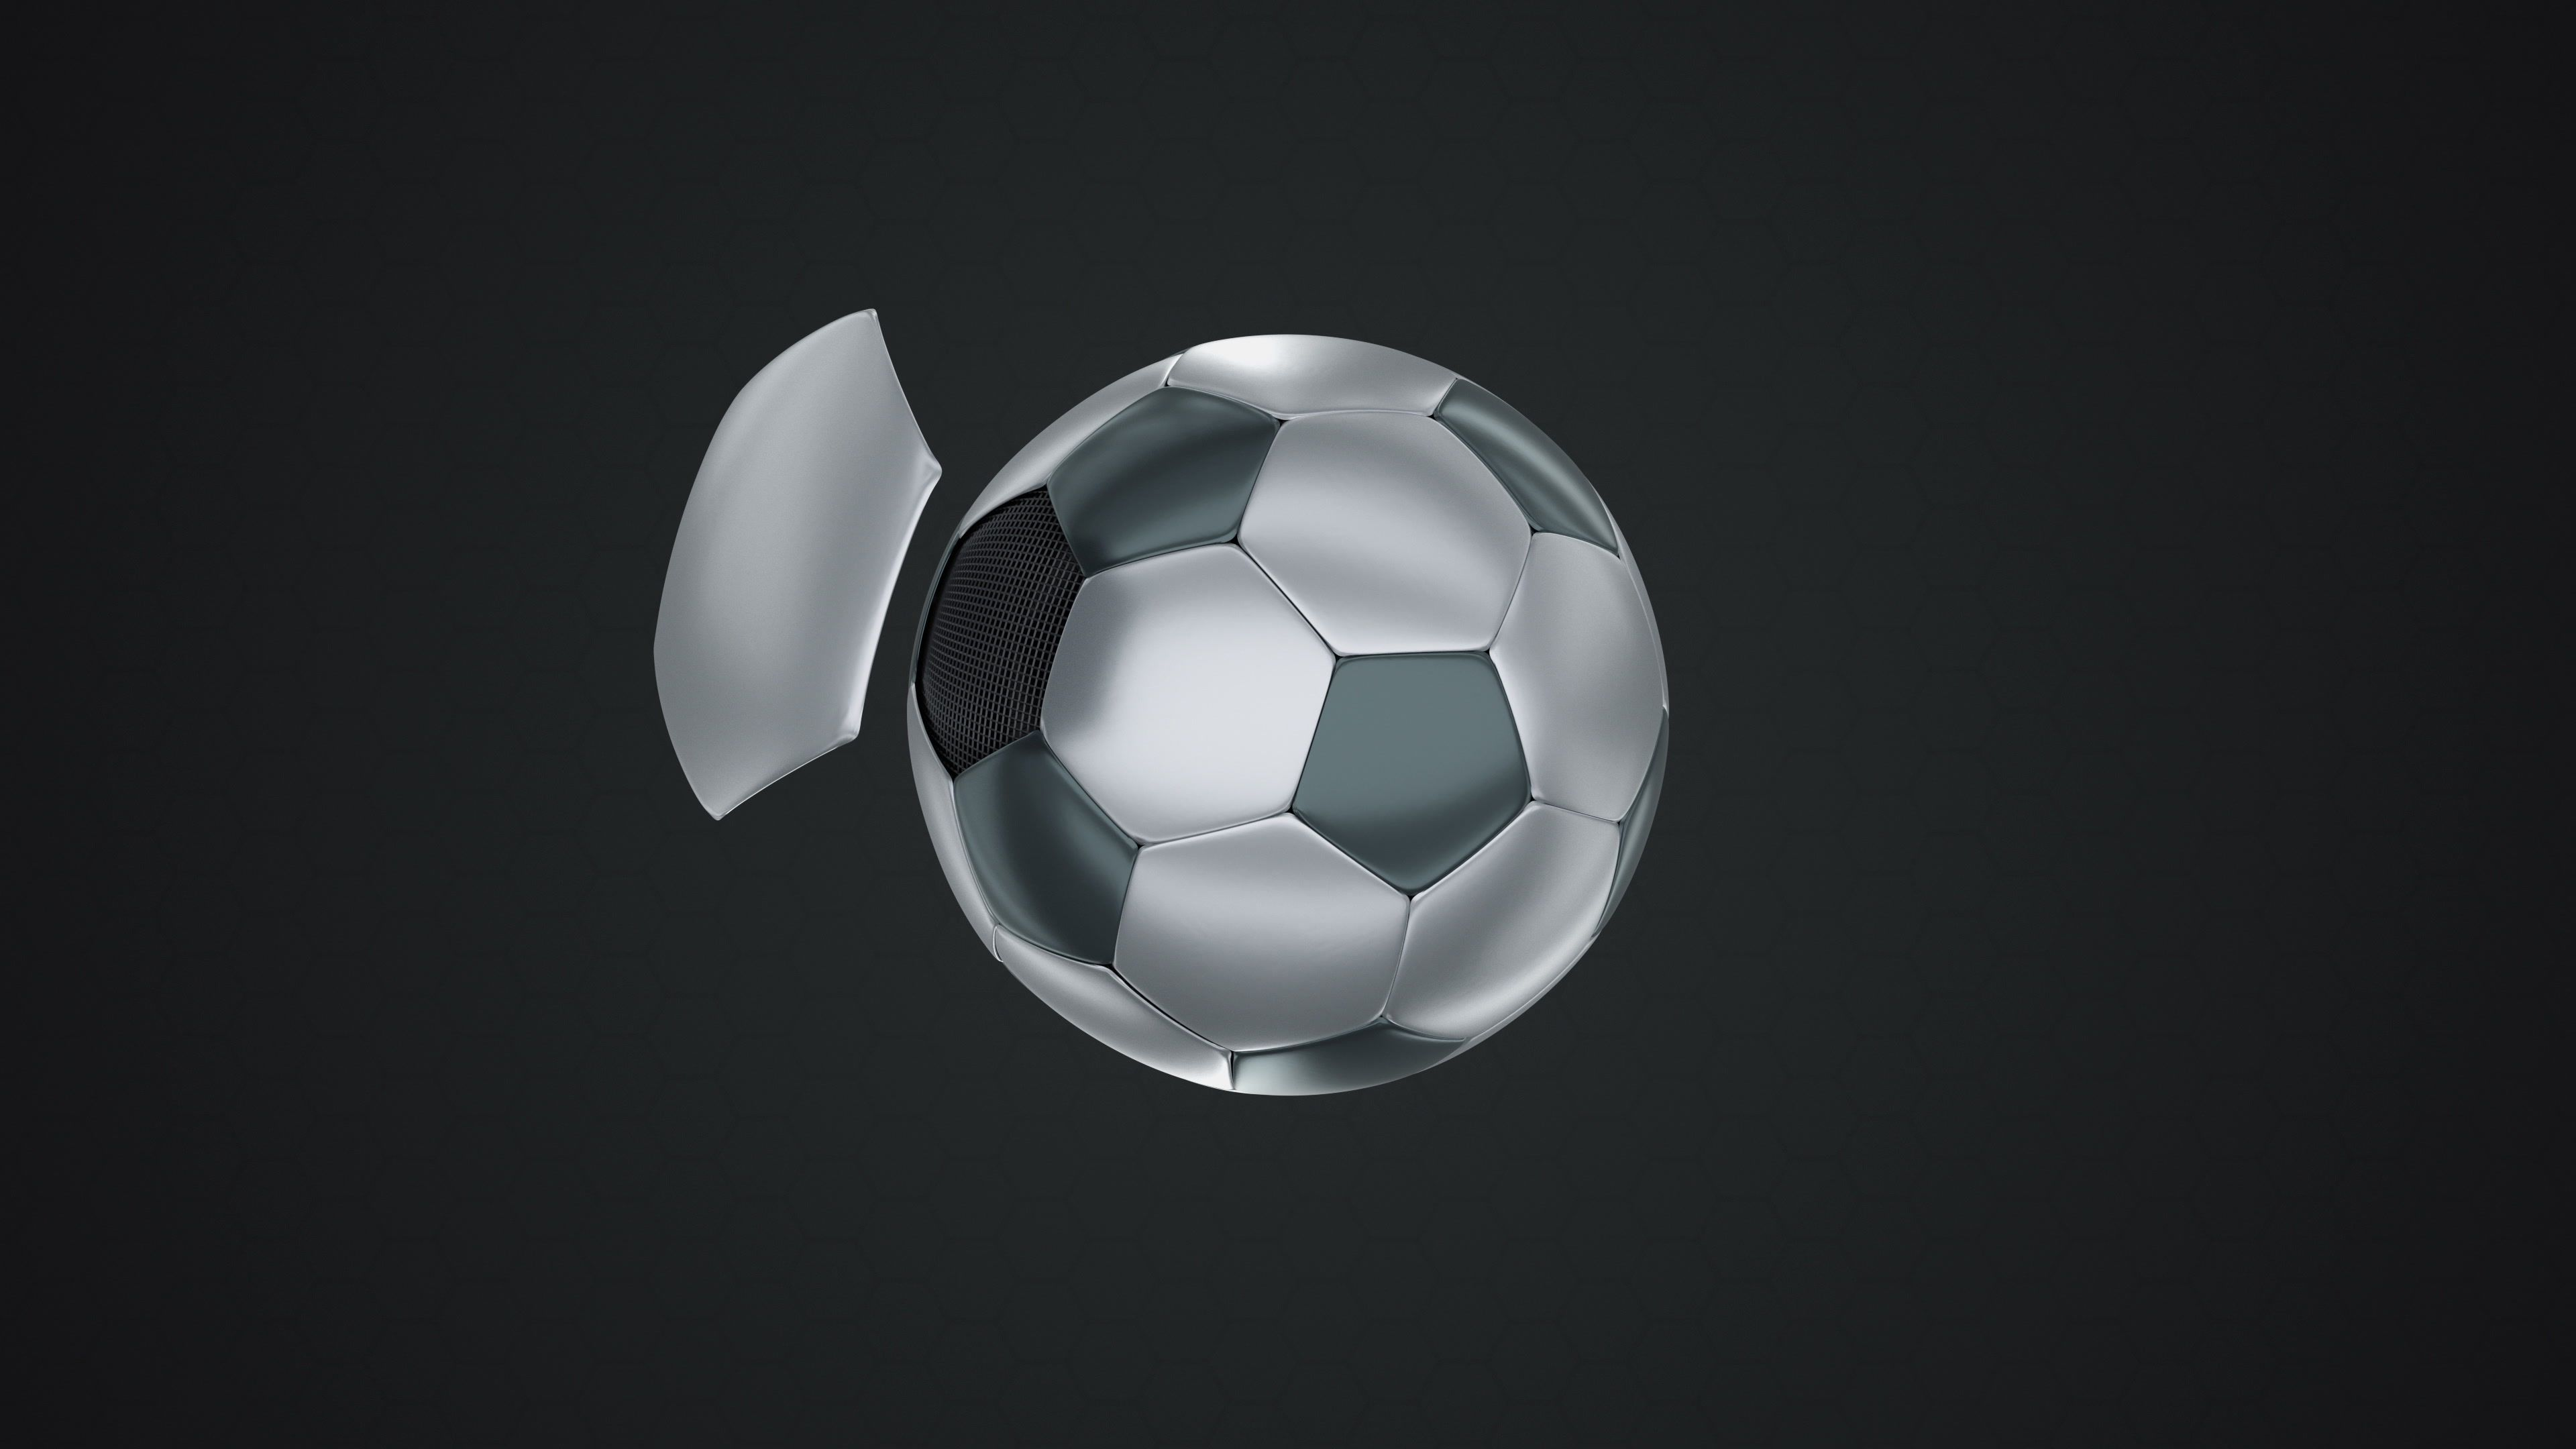 Black And White Metallic Football Flying In And Out On Dark Background Stock Footage Metallic Football Black White Black And White Dark Backgrounds Metal